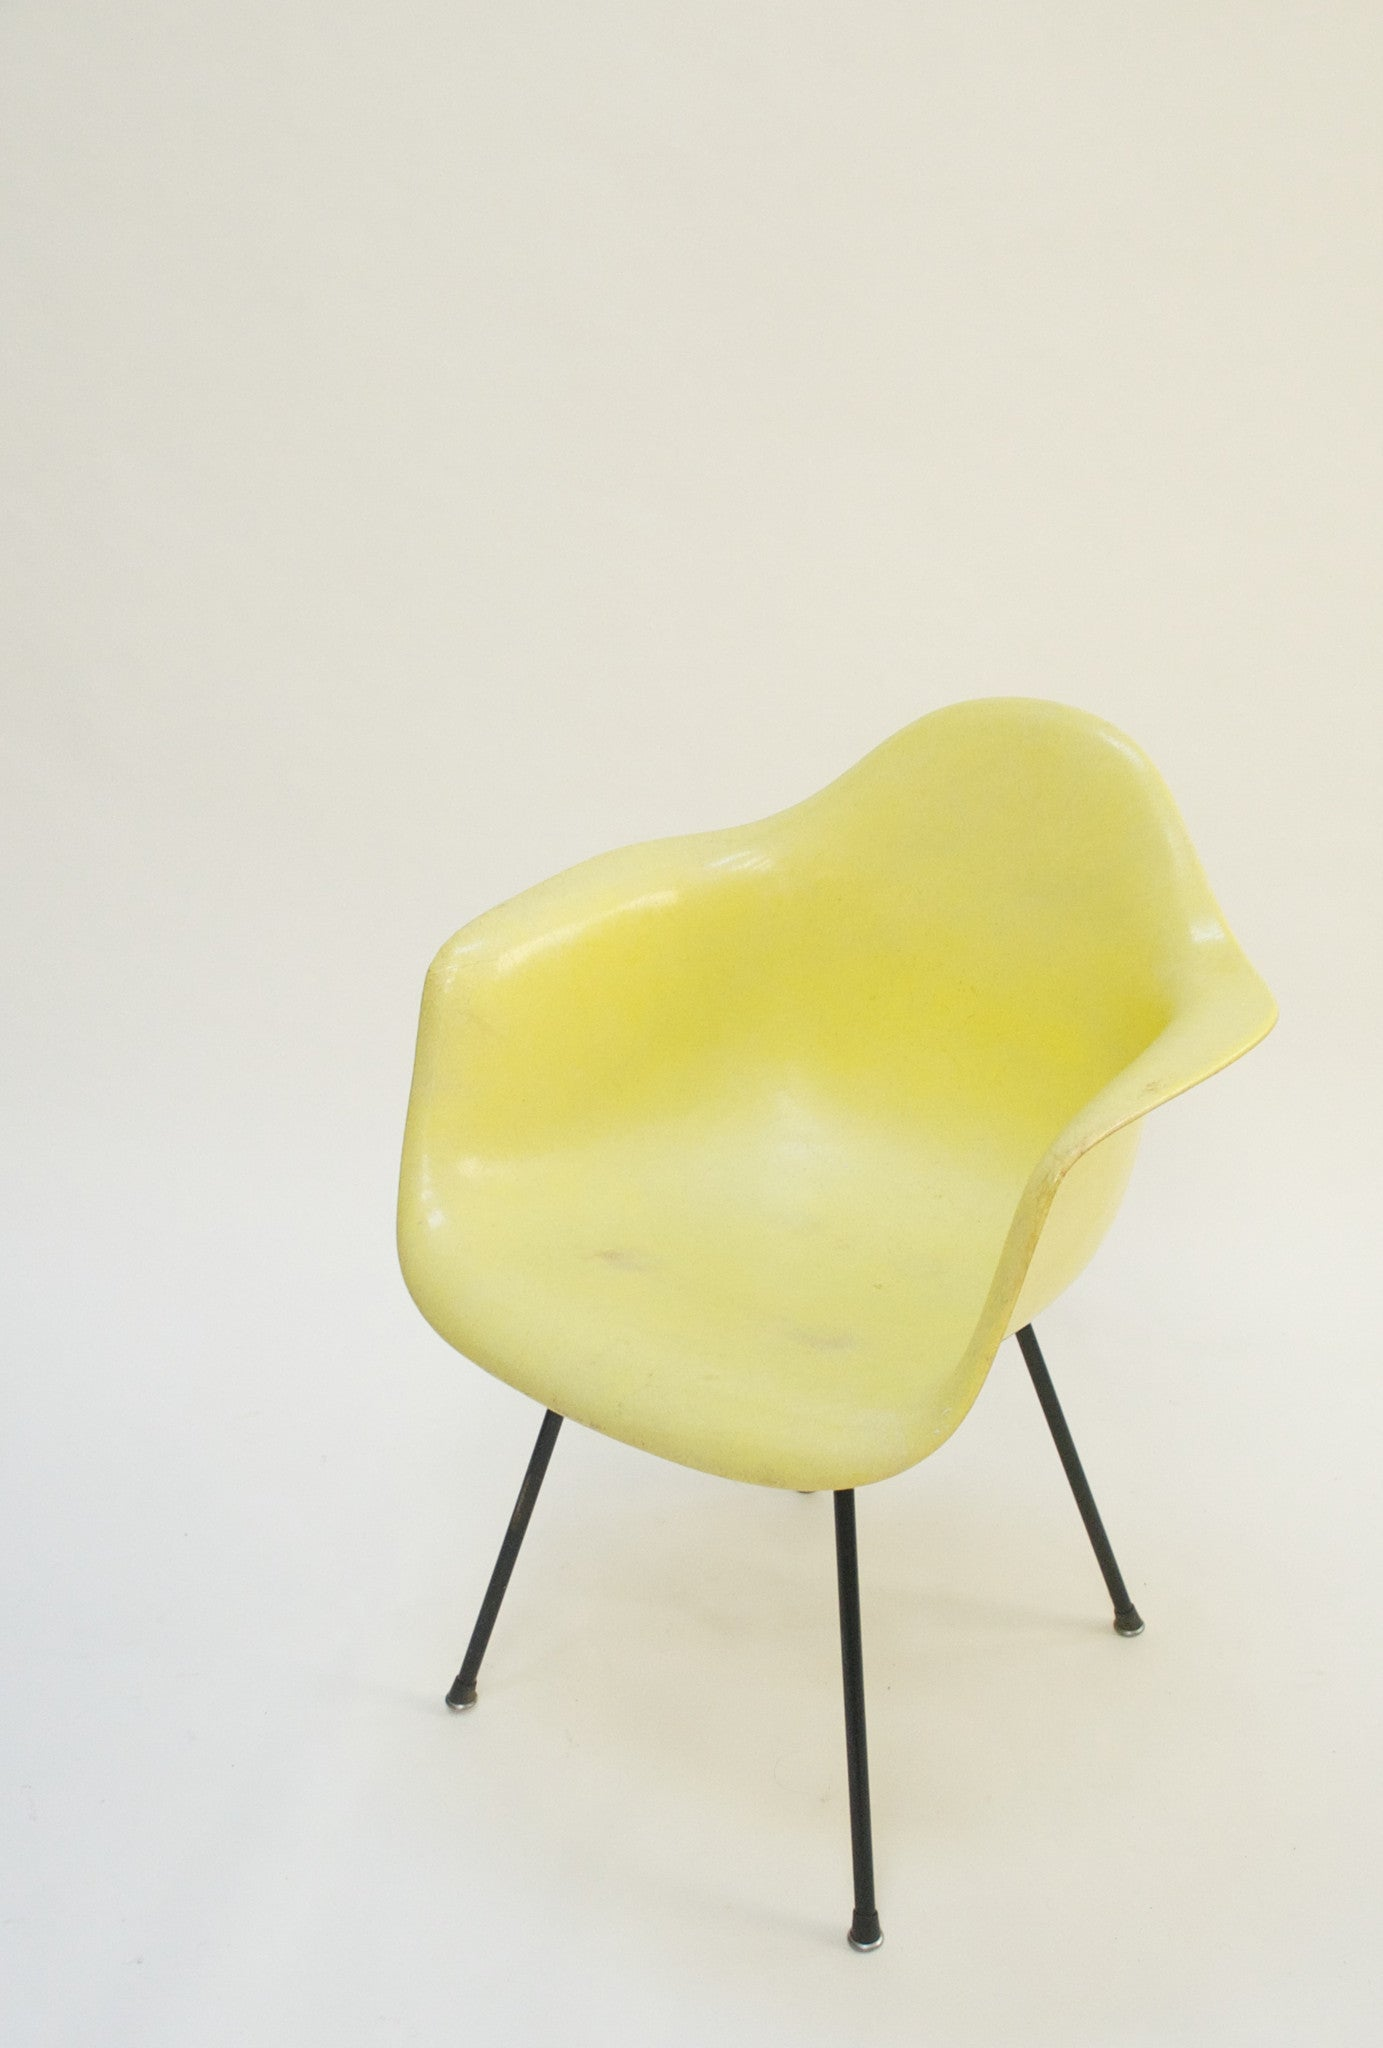 SOLD Yellow Eames Herman Miller Fiberglass Arm Shell Chair Early 1954